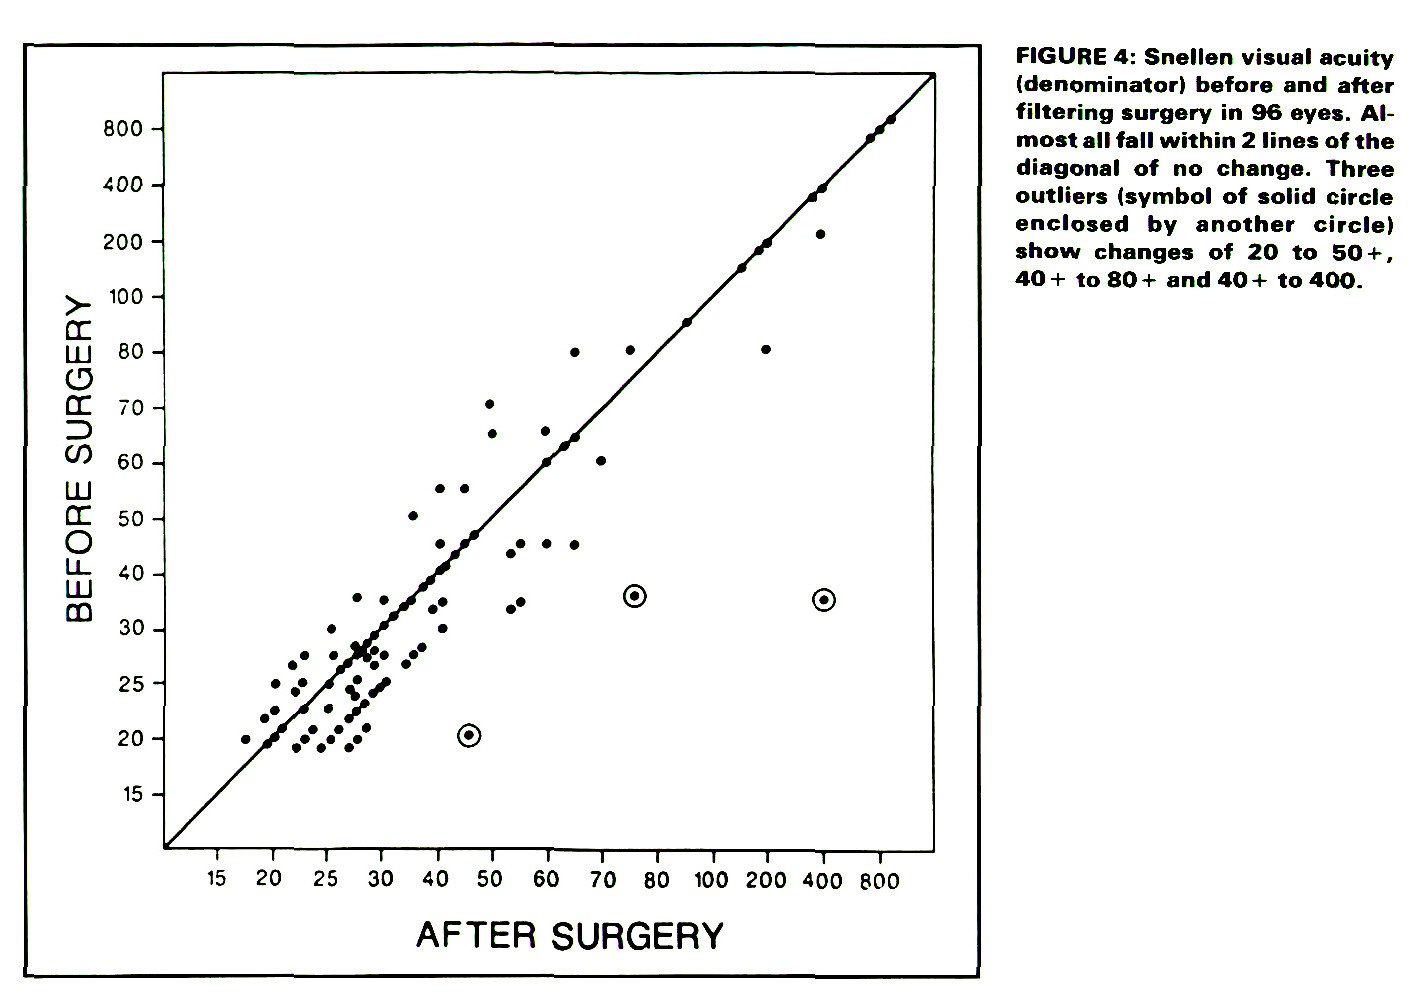 Central Visual Field Visual Acuity And Sudden Visual Loss After